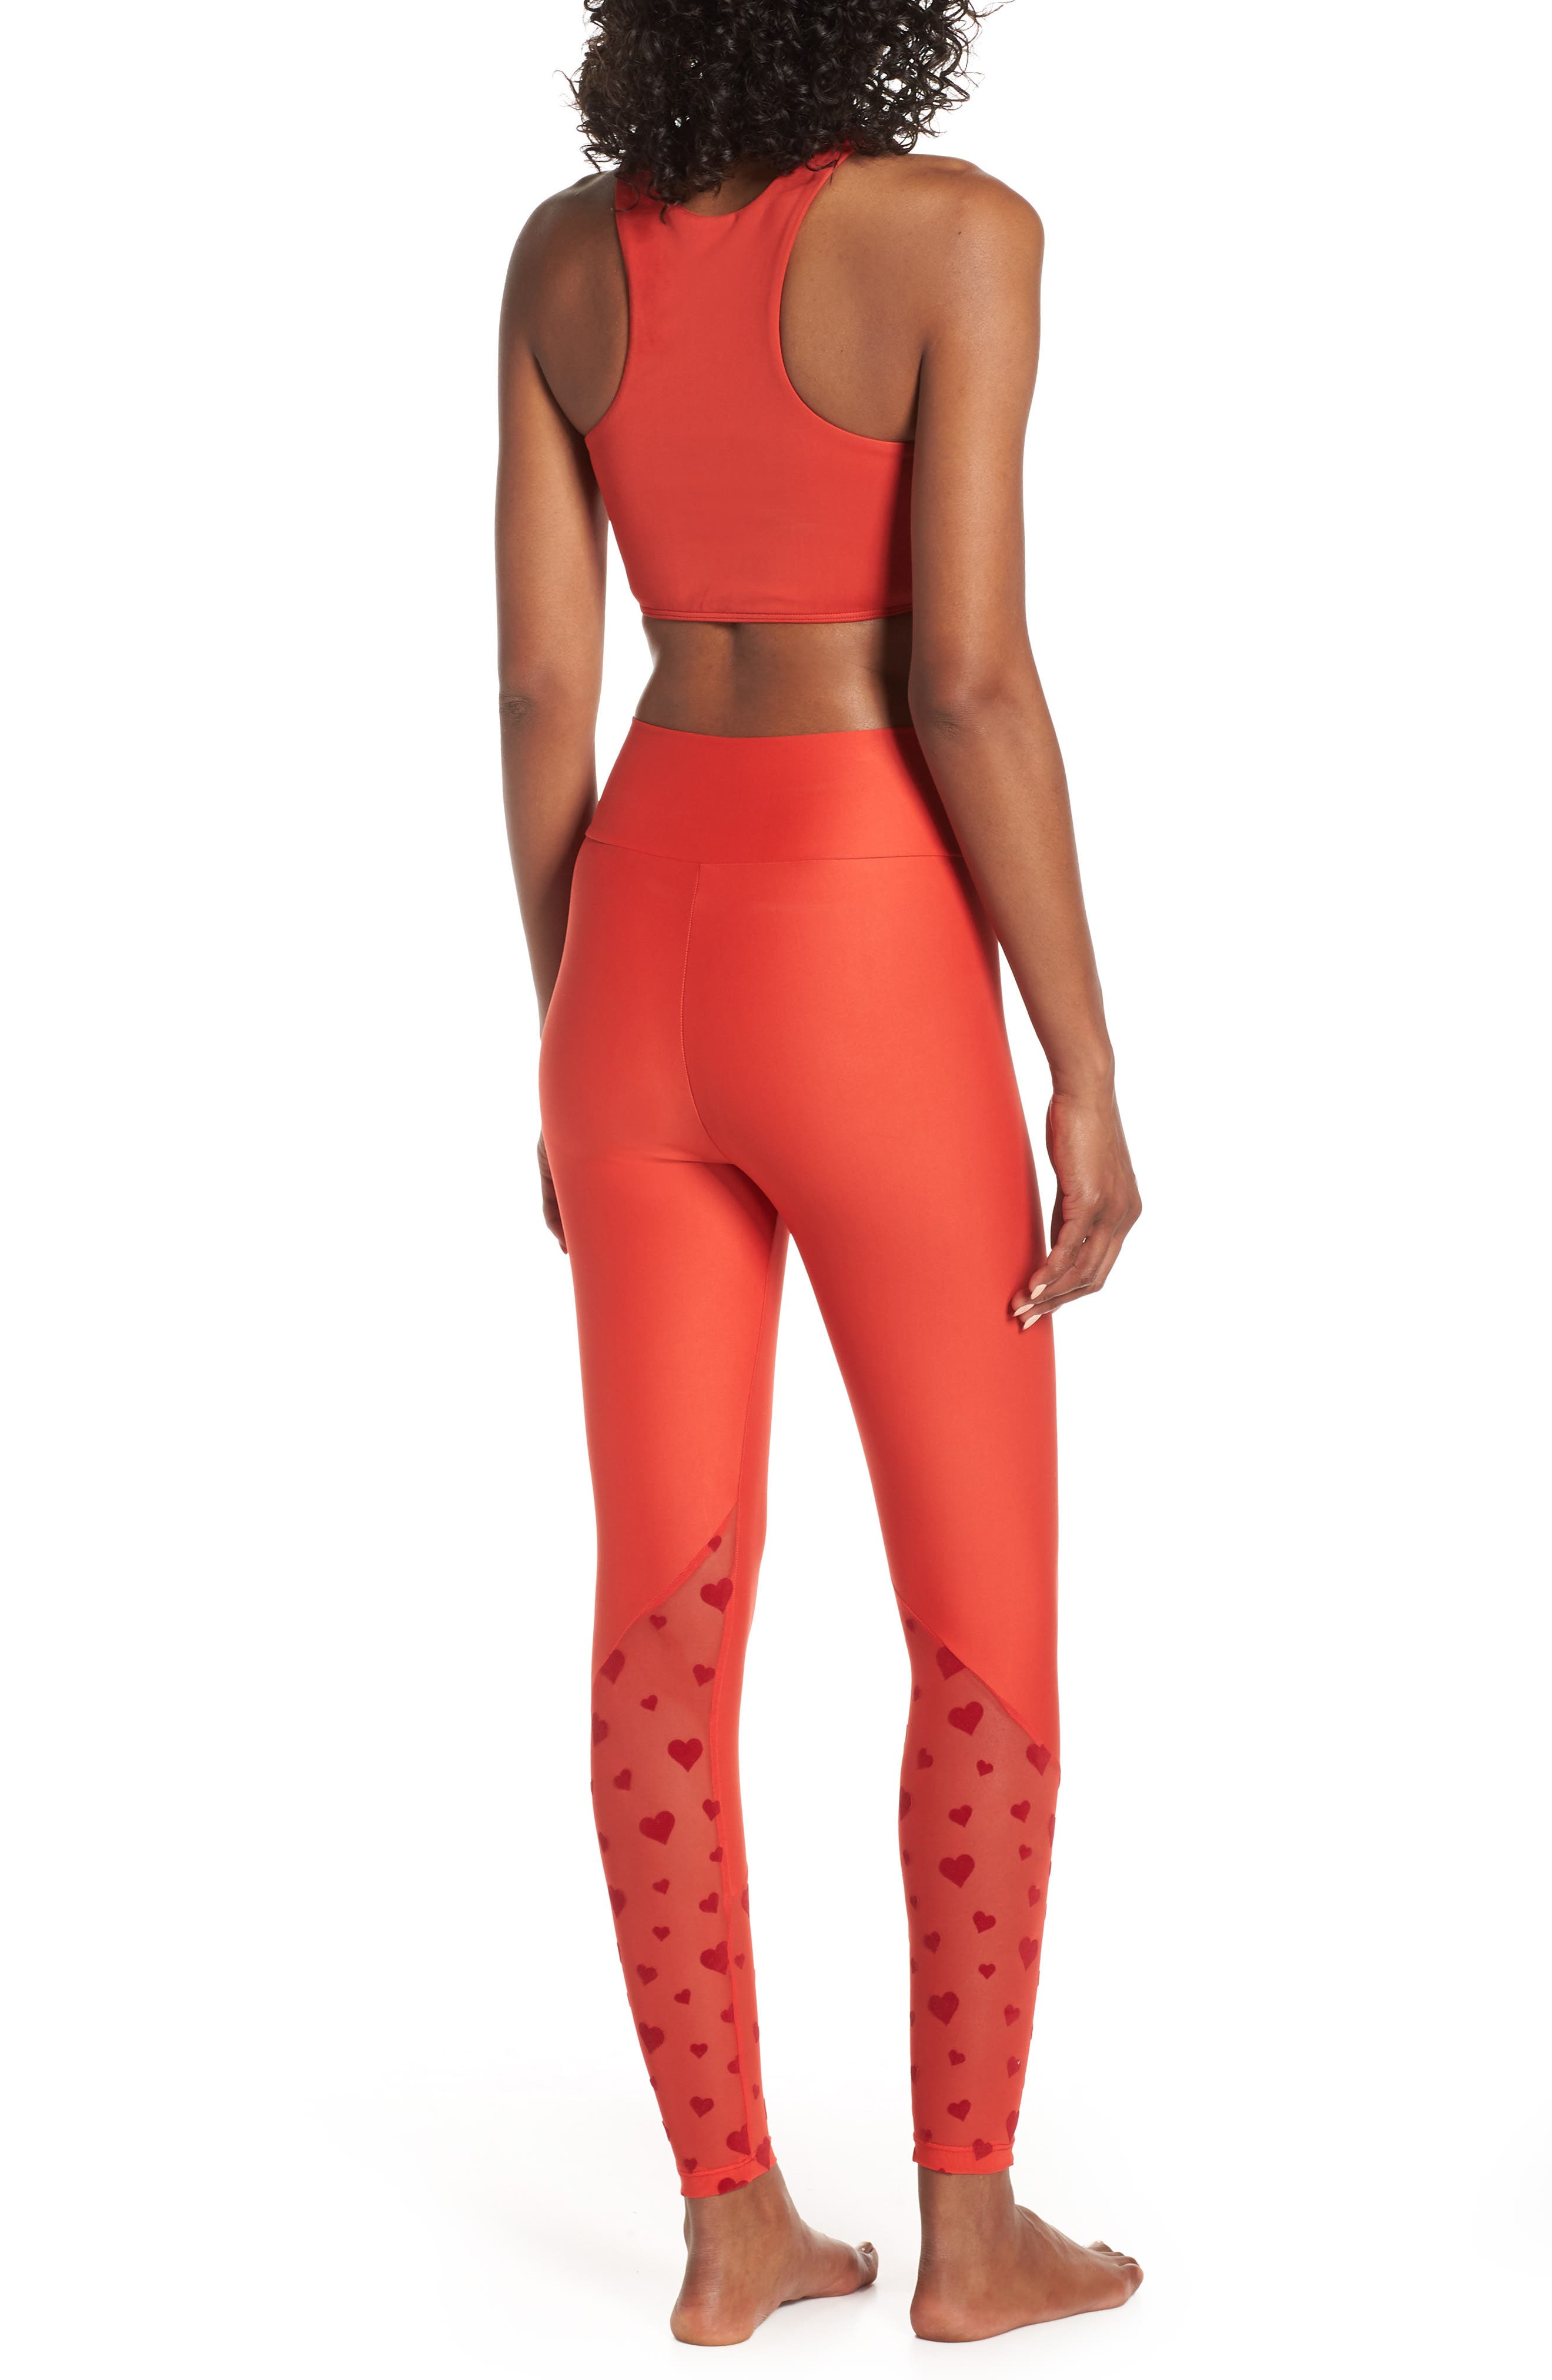 BEACH RIOT,                             Beach Leggings,                             Alternate thumbnail 9, color,                             RED HEART